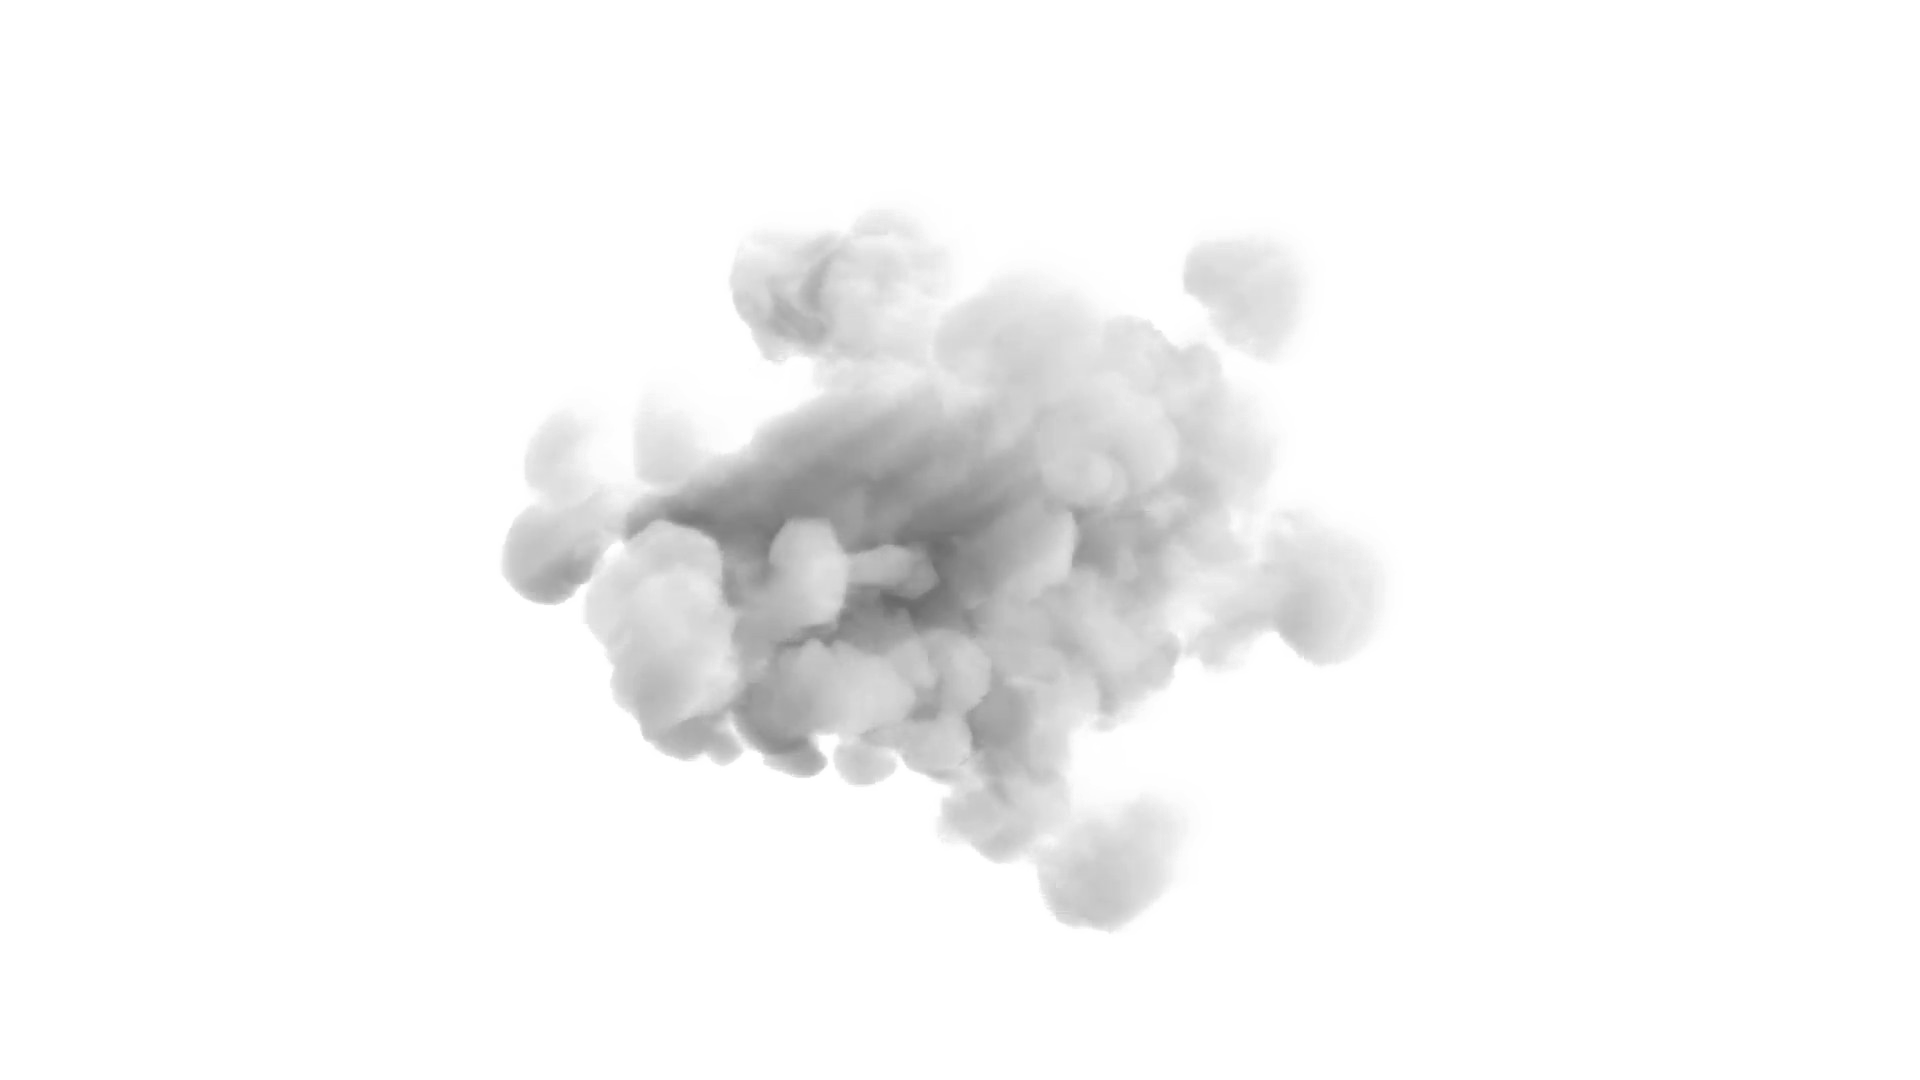 Cloud of smoke png. Image free download picture